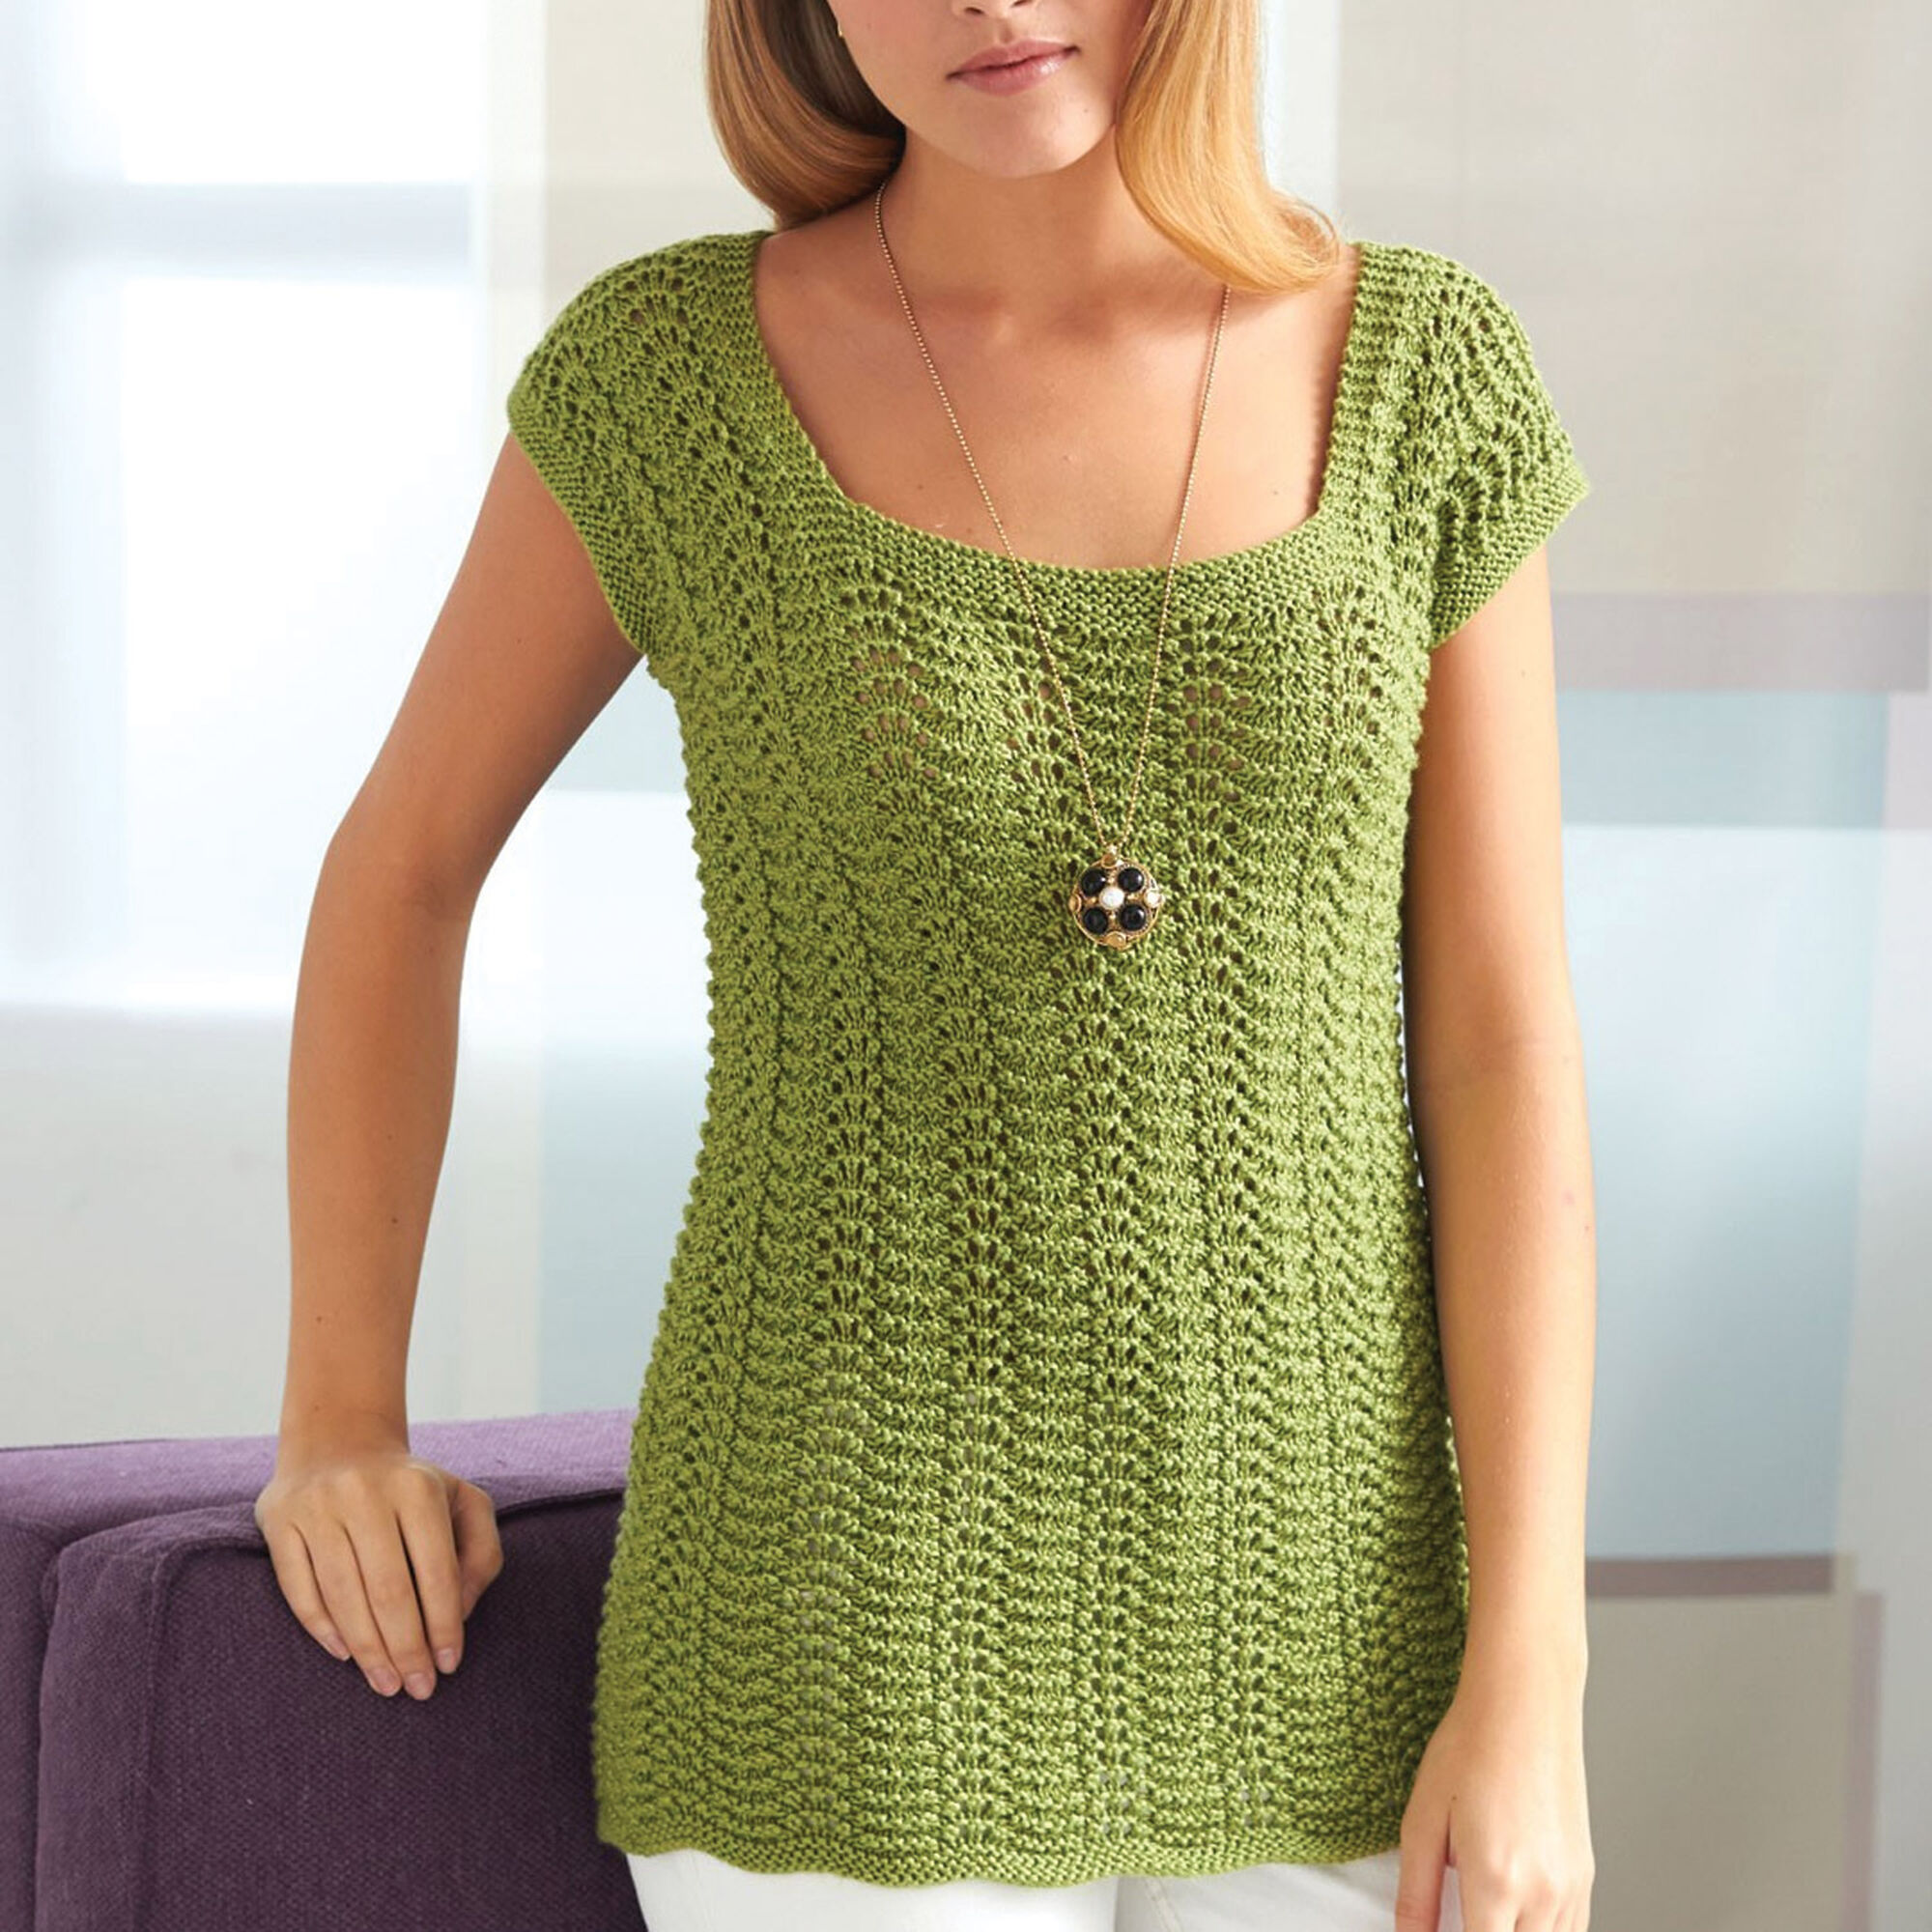 Patons 4 Row Feather & Fan Top, XS/S Pattern | Yarnspirations